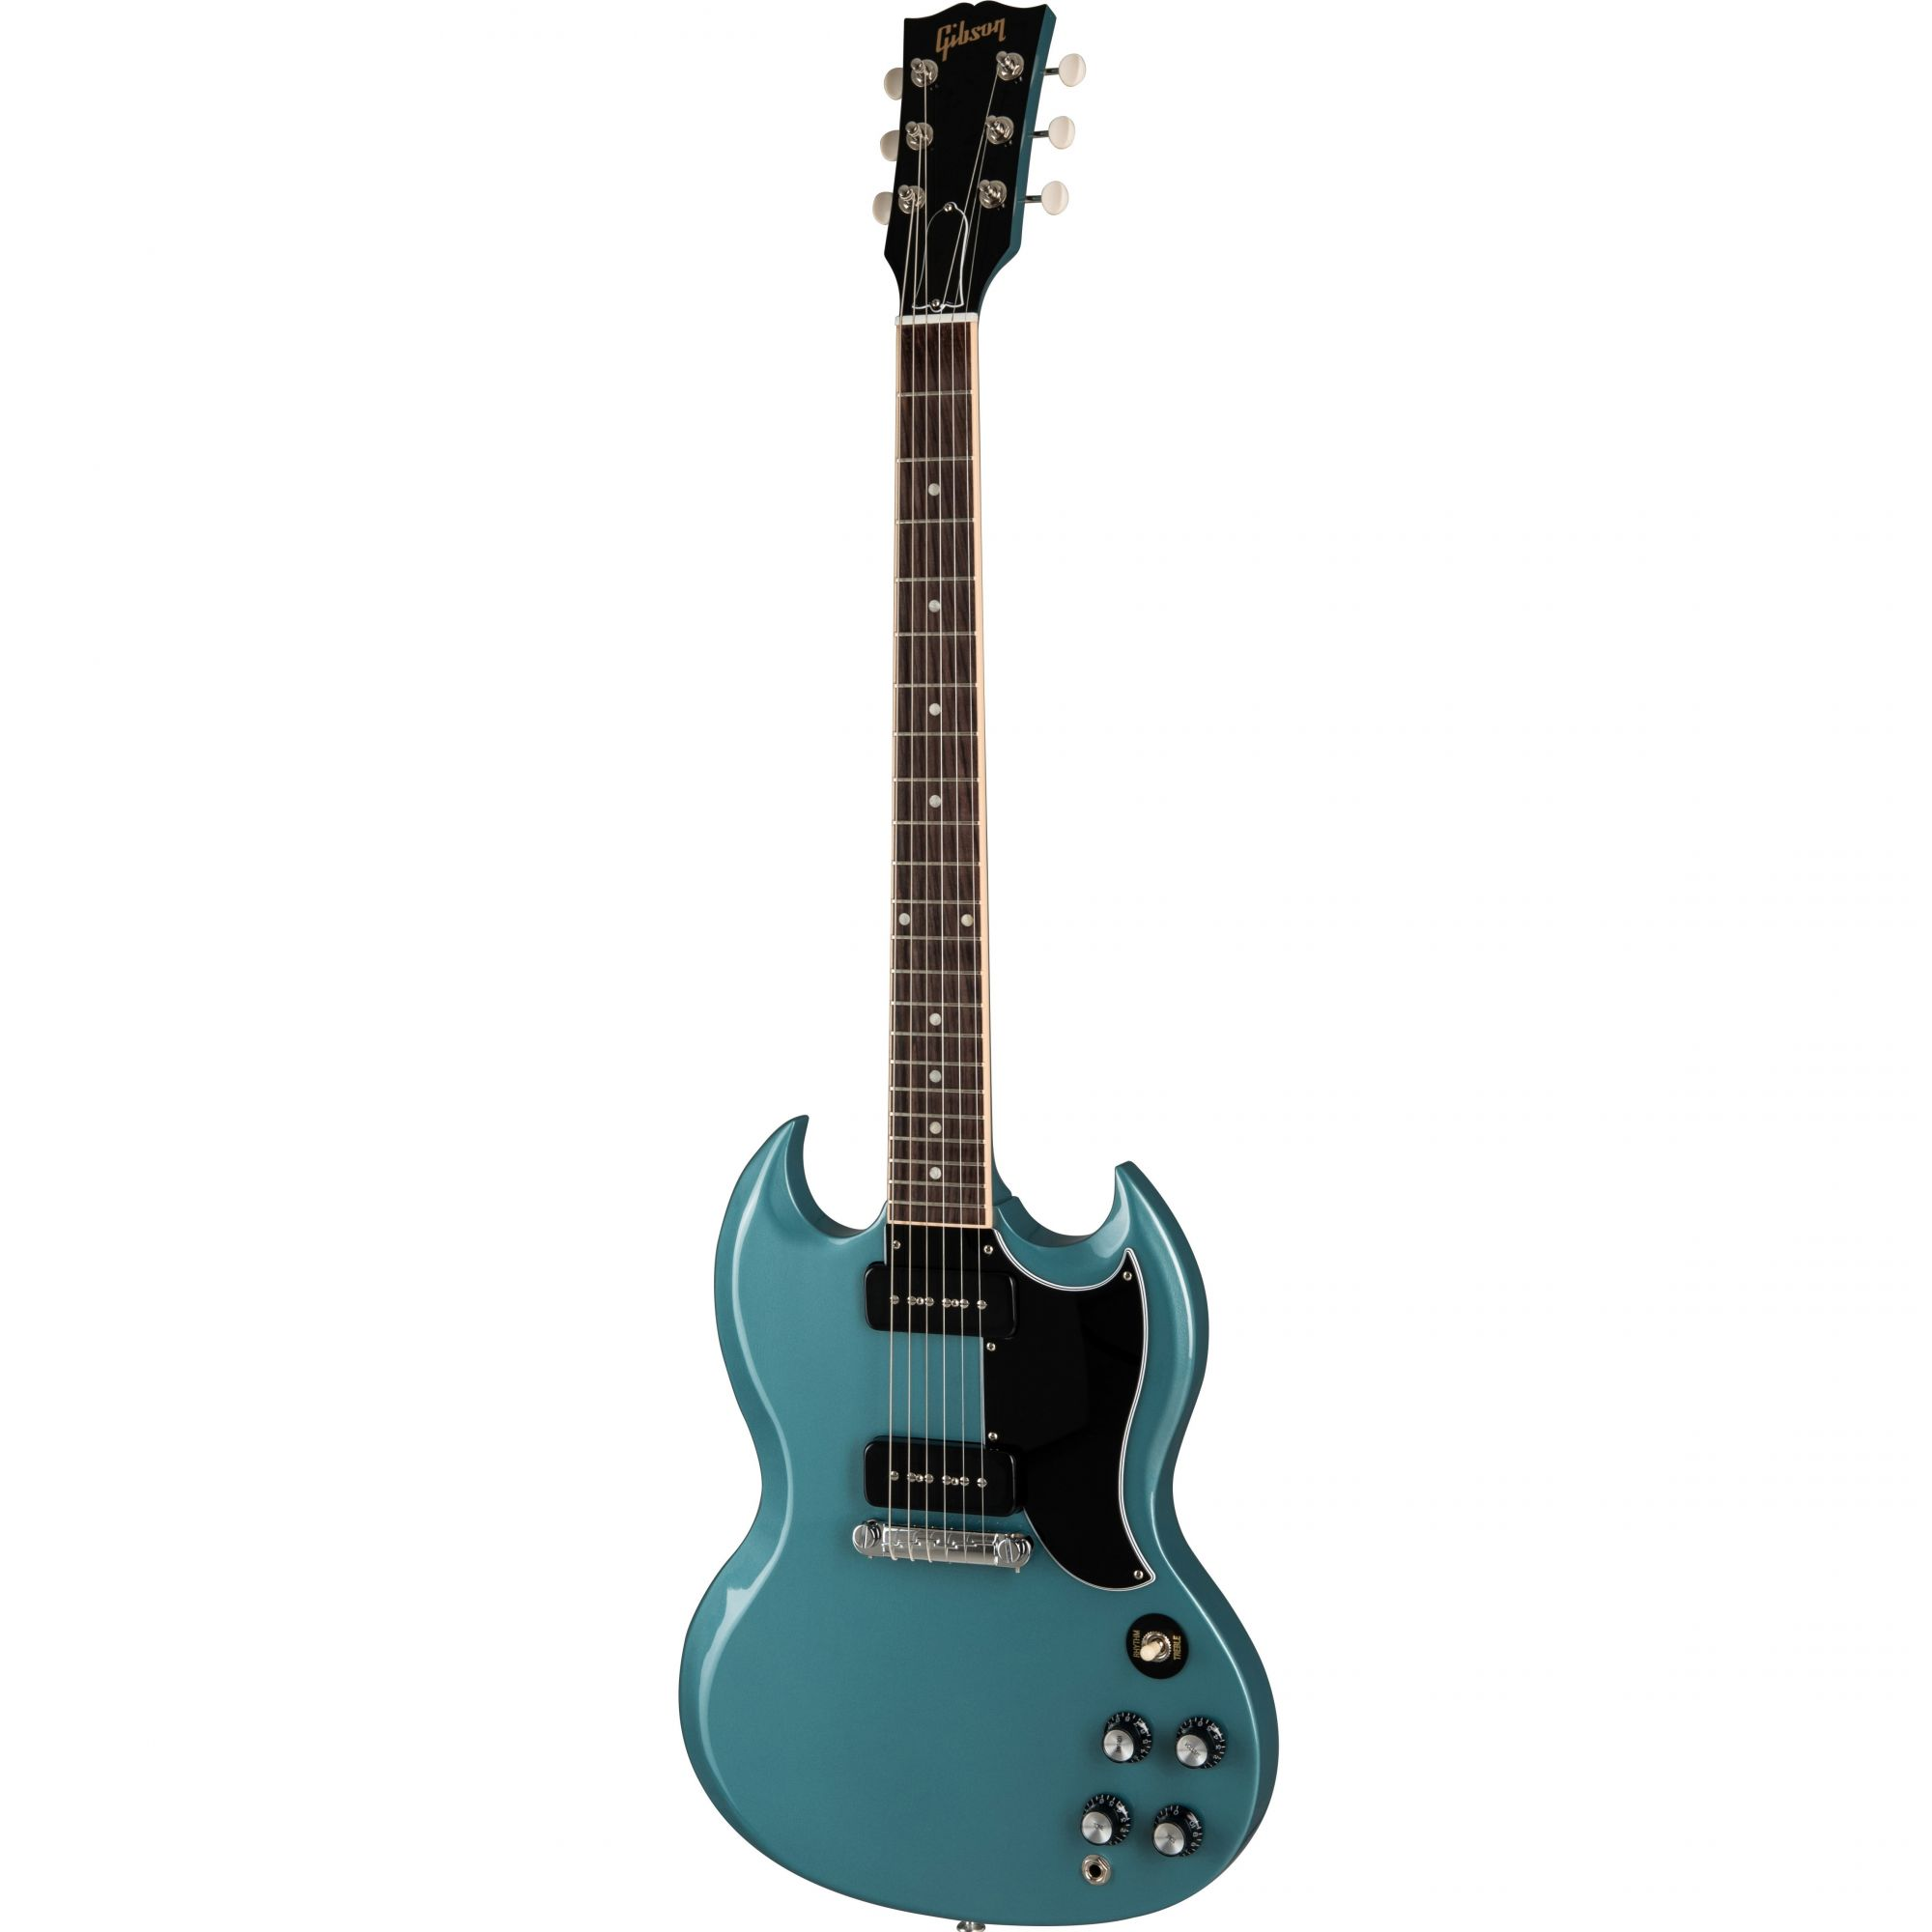 Gibson SG Special Electric Guitar Pelham Blue